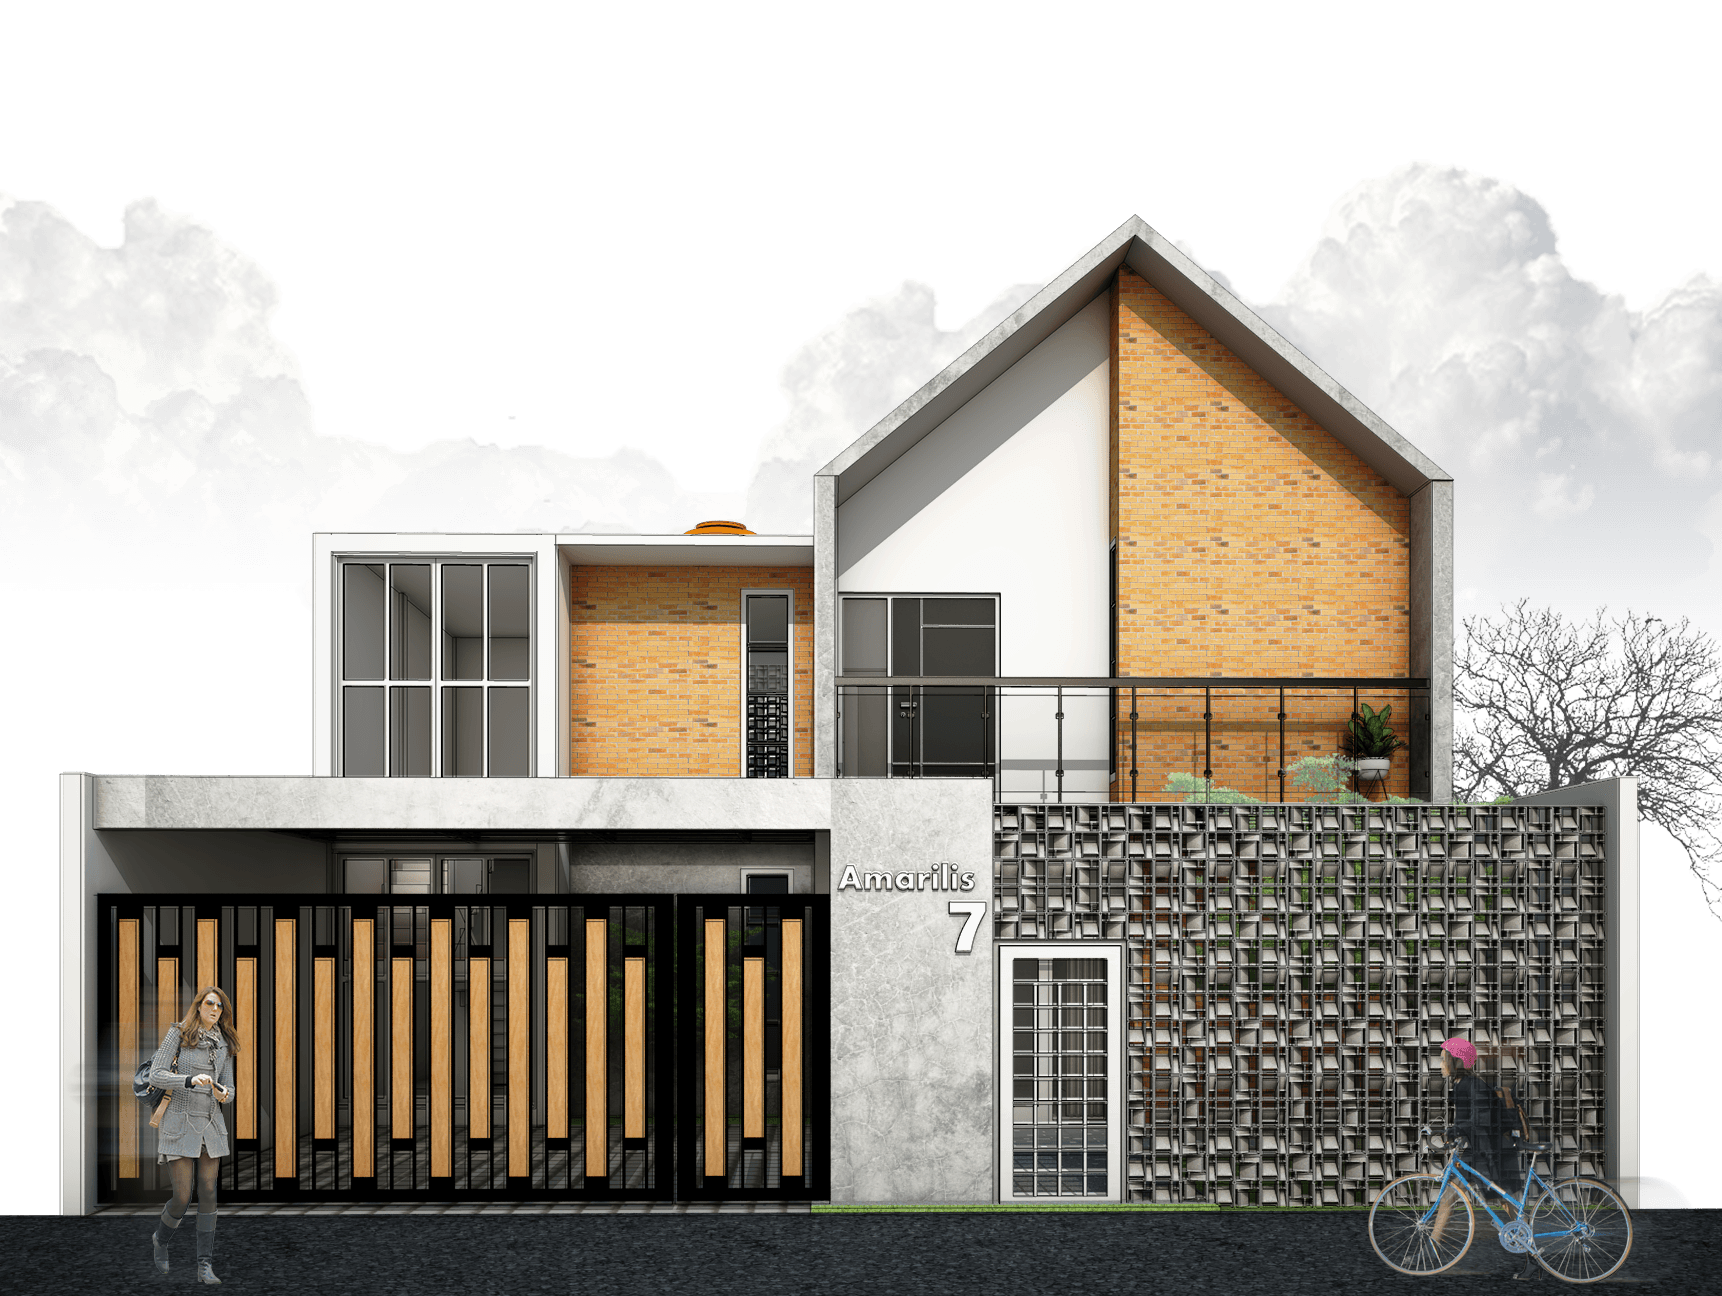 Jasa Design and Build ASTABUMI ARCHITECT & INTERIOR DESIGN di Padang